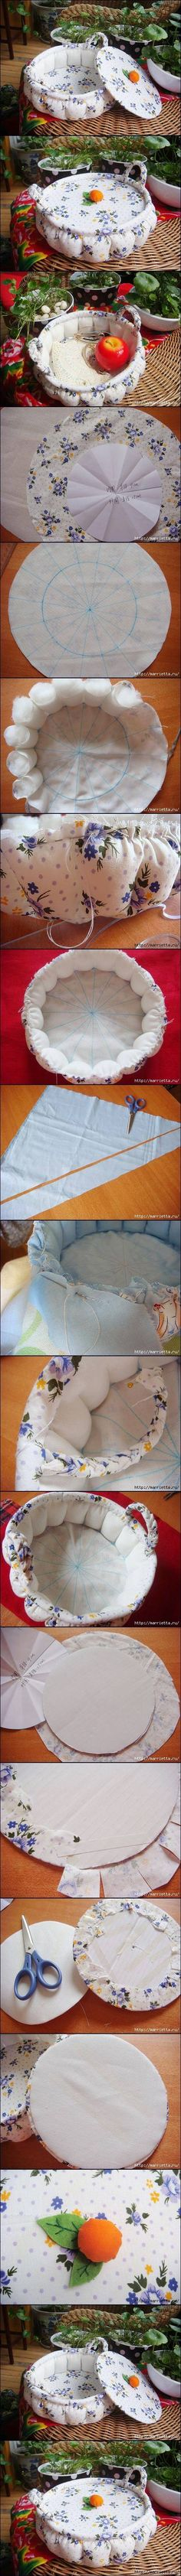 DIY Needlework Basket diy sew craft crafts easy crafts diy crafts sewing how to tutorial sewing tutorials sewing crafts crafts to make and sell